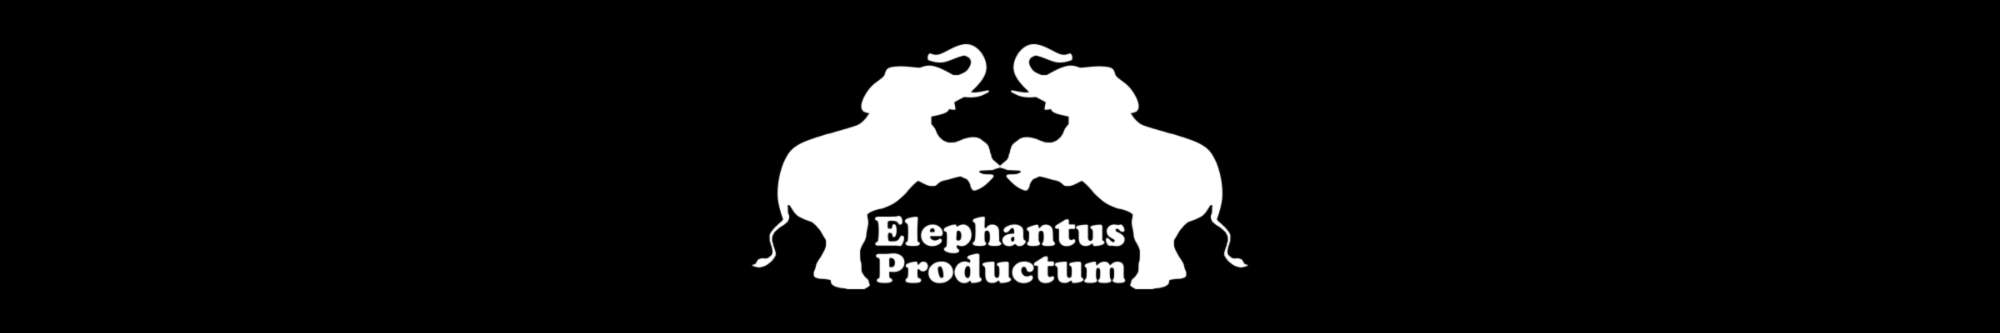 Showroom - Elephantus Productum